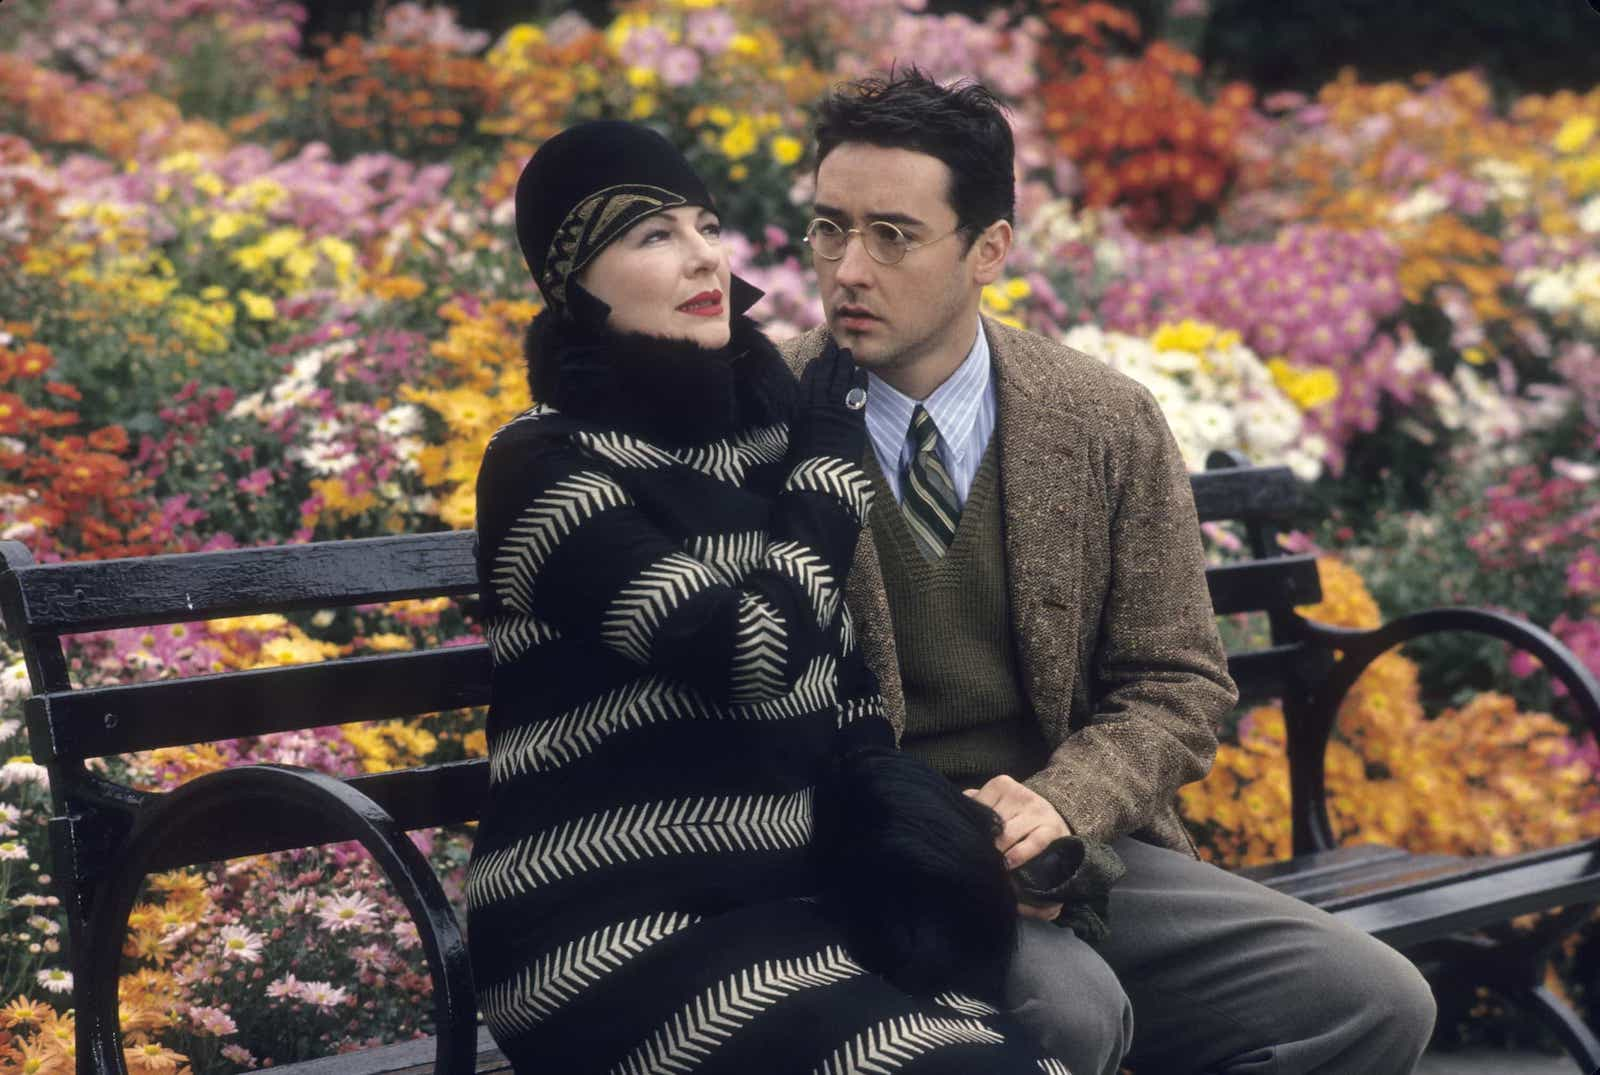 Best Comedy Films - Bullets Over Broadway - Woody Allen - StudioBinder